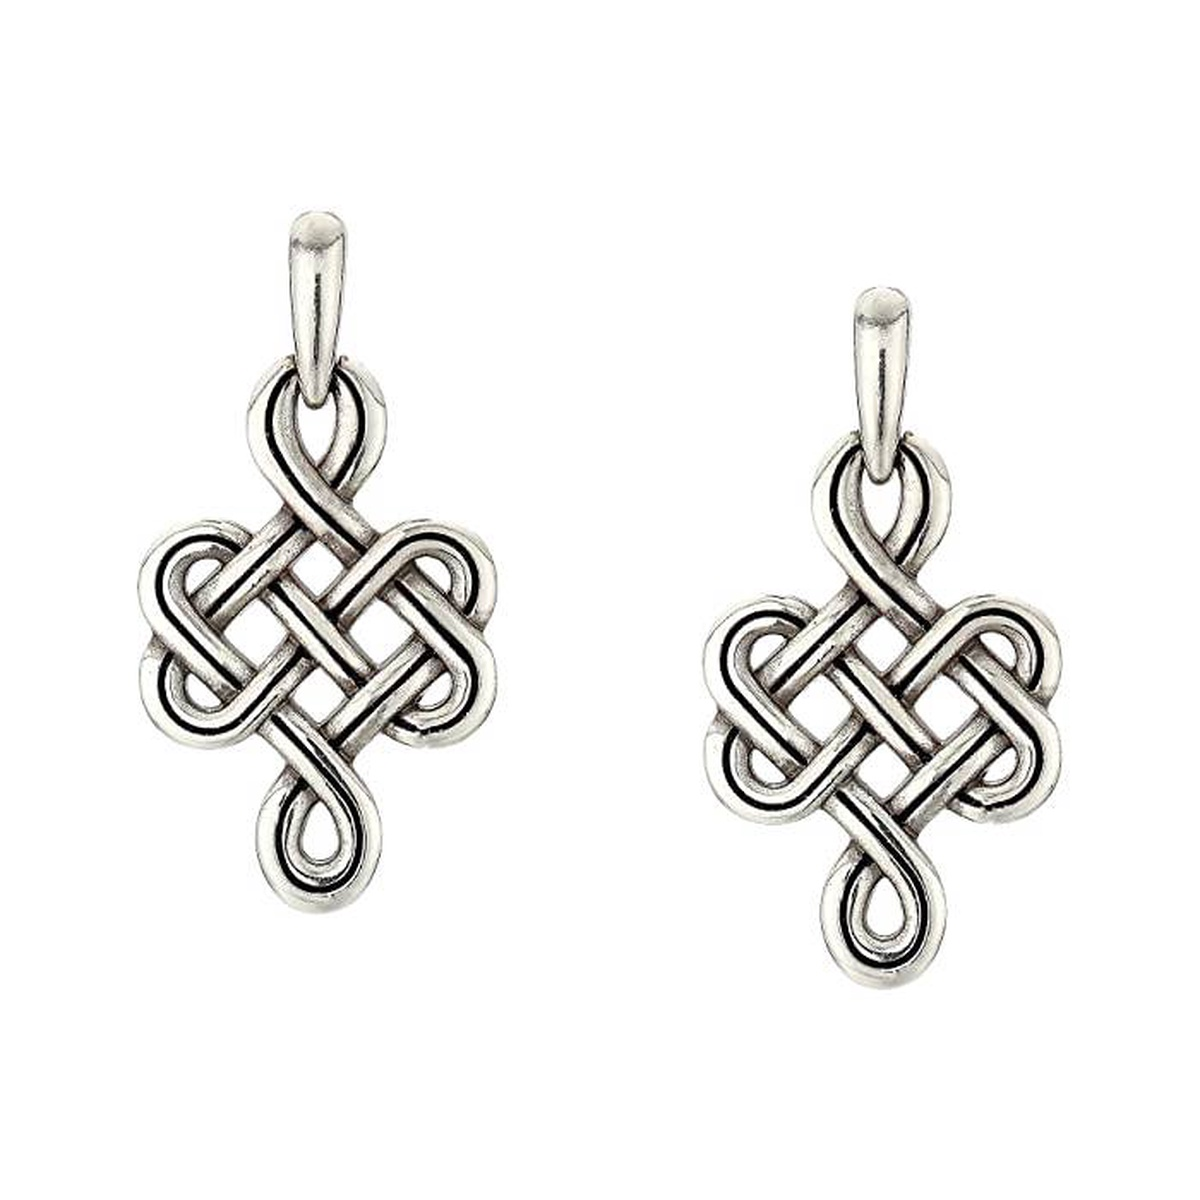 Purchase Brighton womens interlok post ring knotted Earrings 2021 new luxury goods